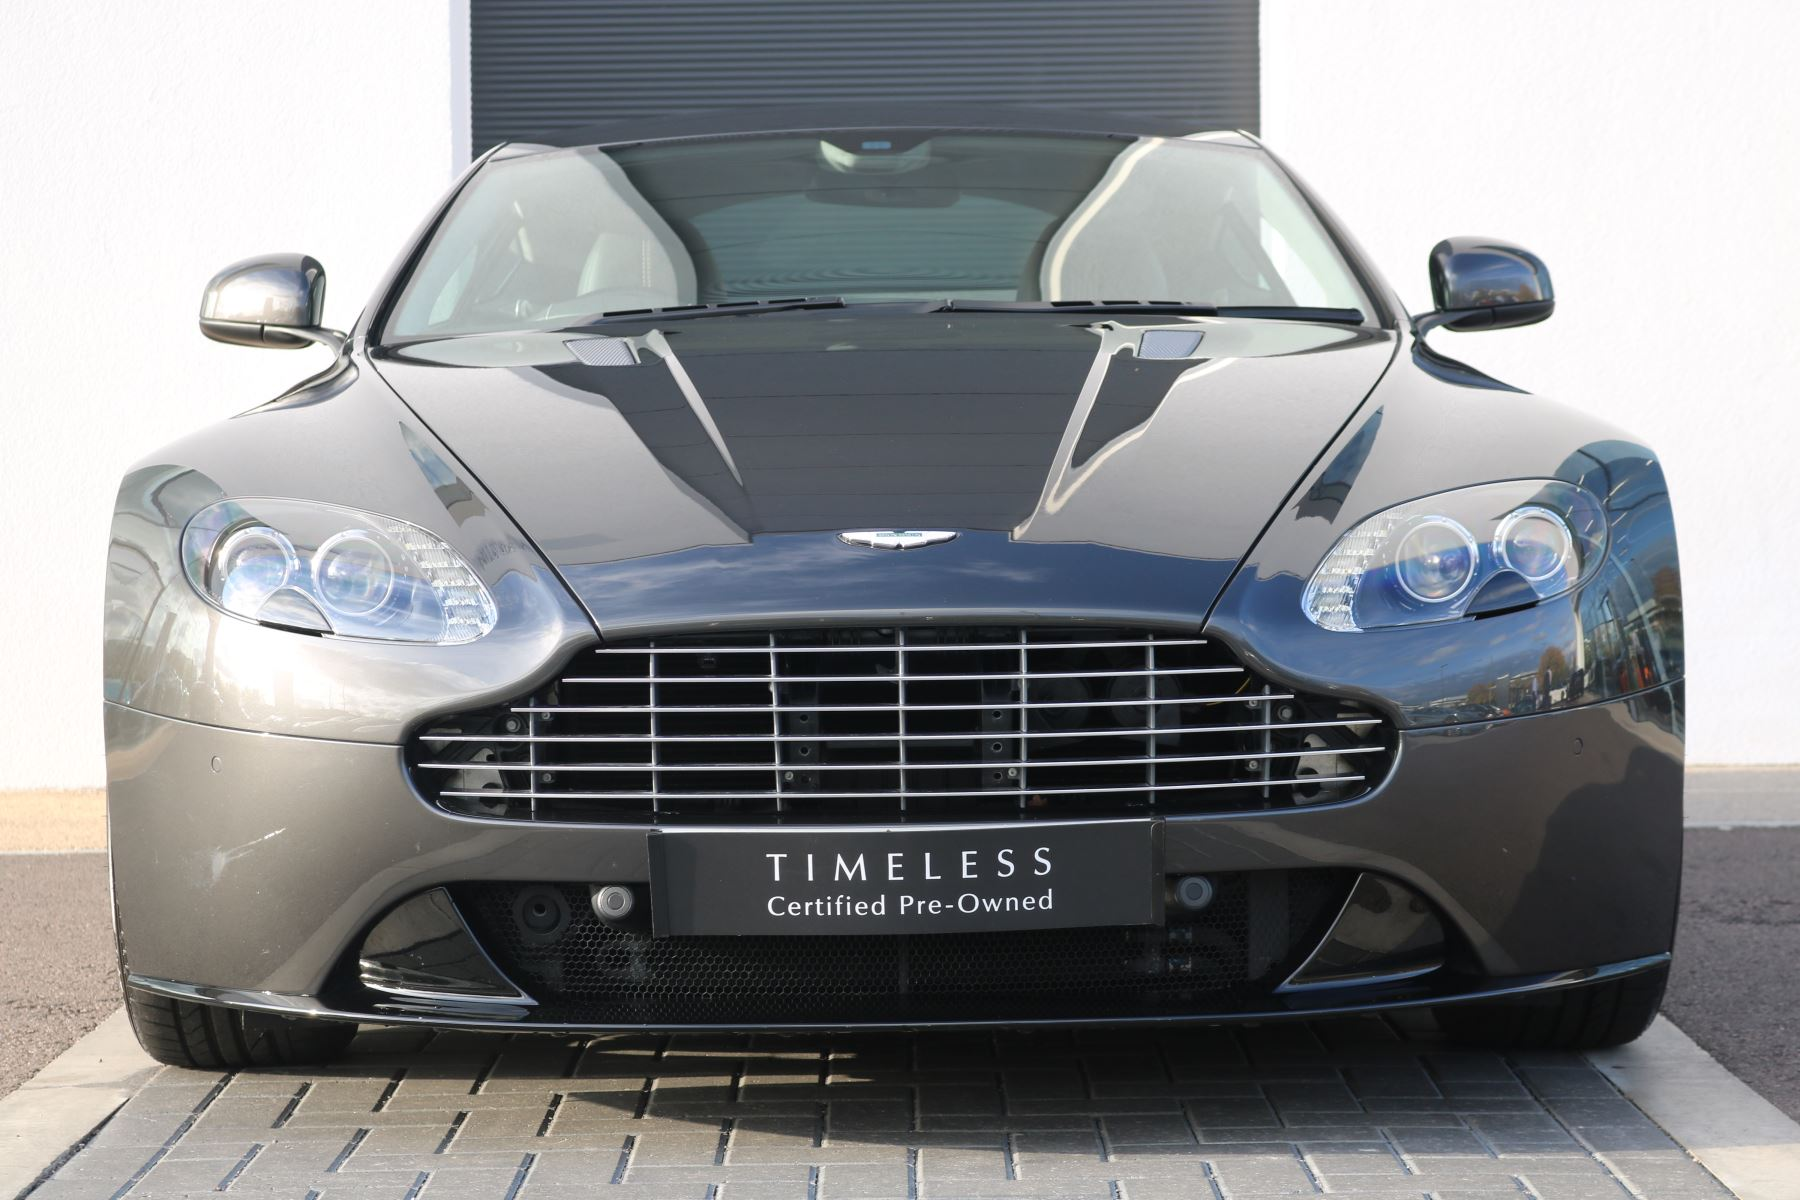 Aston Martin V8 Vantage S Coupe S 2dr Sportshift 4.7 Automatic 3 door Coupe (2016)